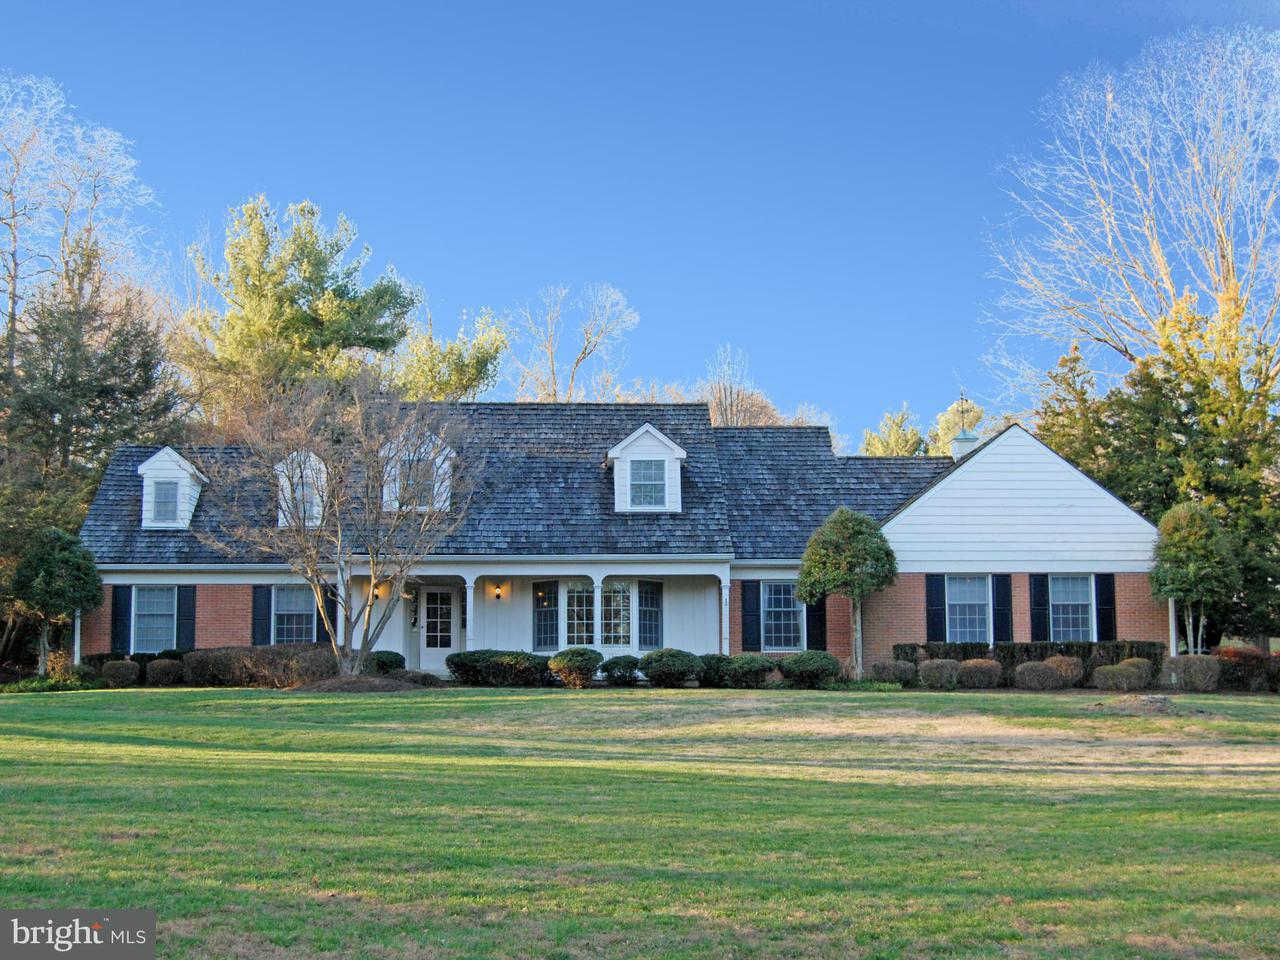 Single Family Home for Sale at 9314 ARNON CHAPEL Road 9314 ARNON CHAPEL Road Great Falls, Virginia 22066 United States